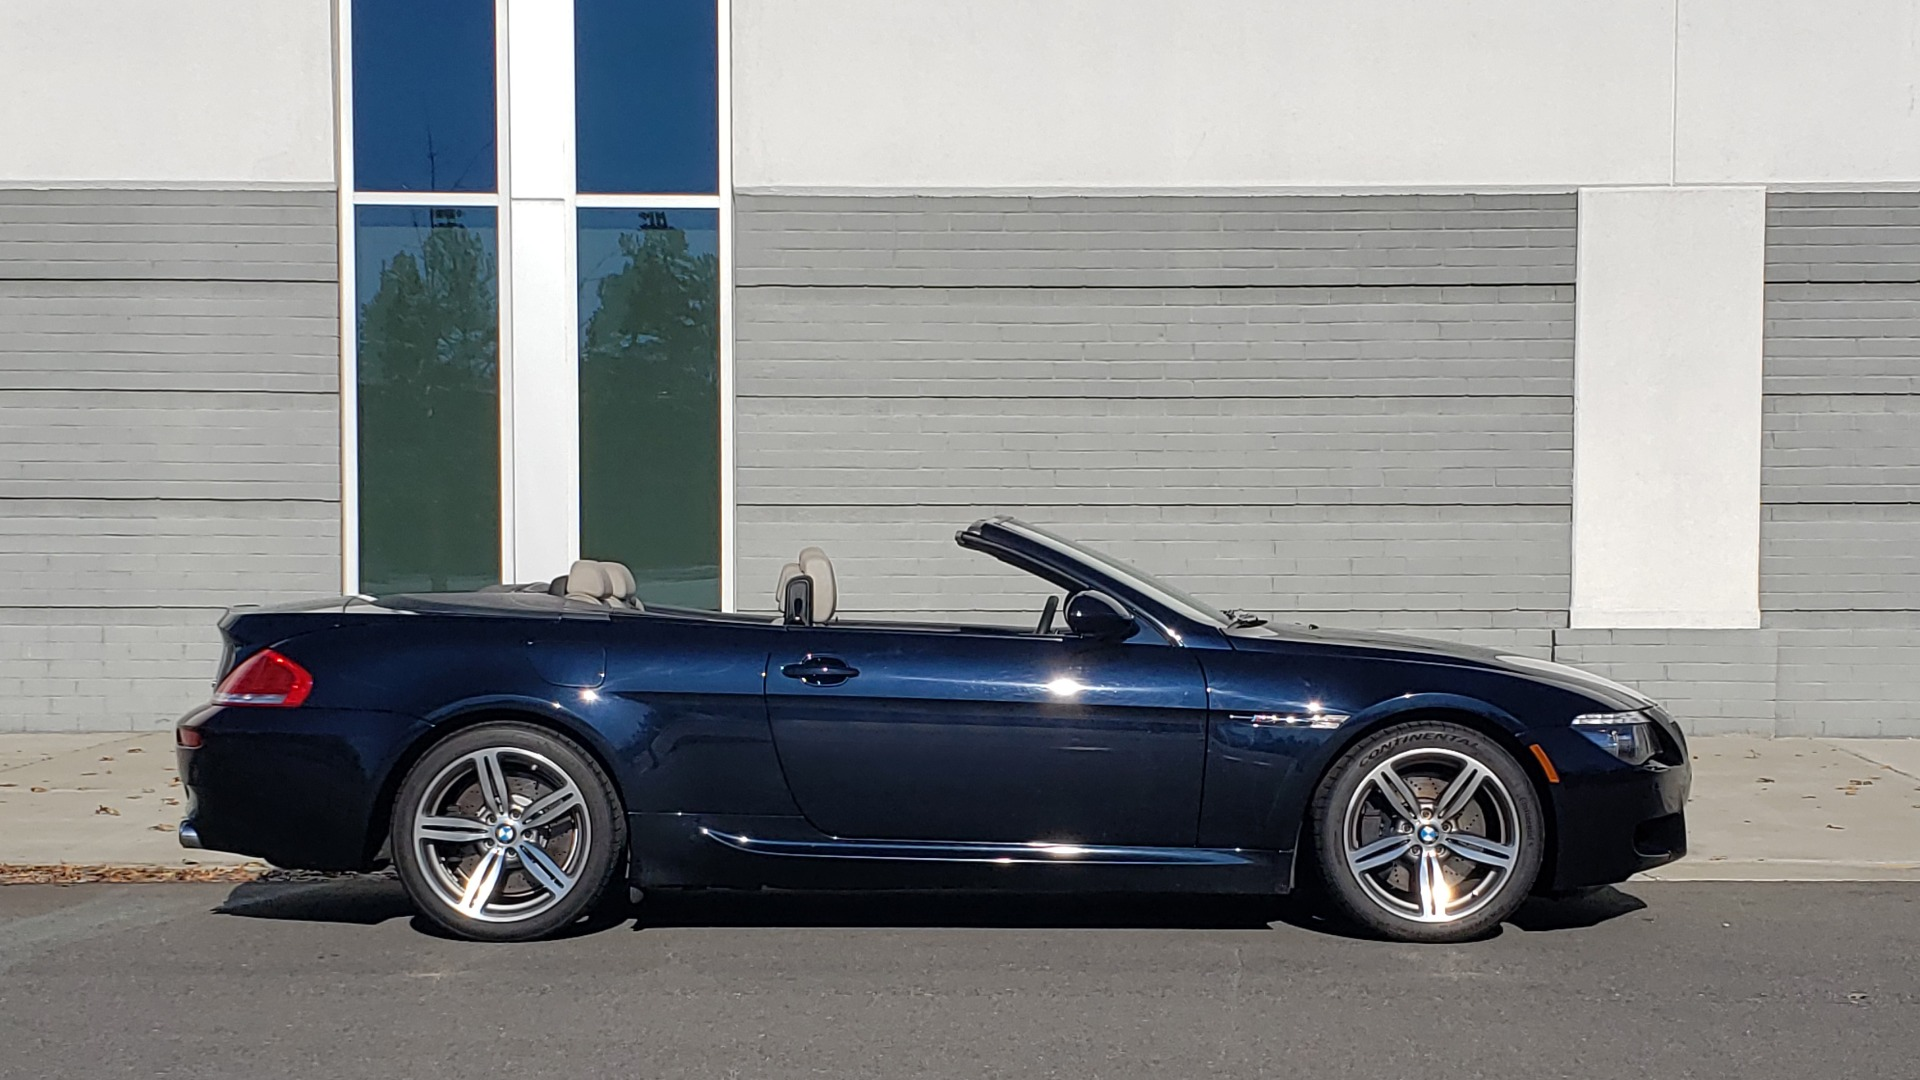 Used 2009 BMW M6 CONVERTIBLE / 5.0L V10 (500HP) / PREM SND / HUD / 19IN WHEELS for sale $24,999 at Formula Imports in Charlotte NC 28227 6